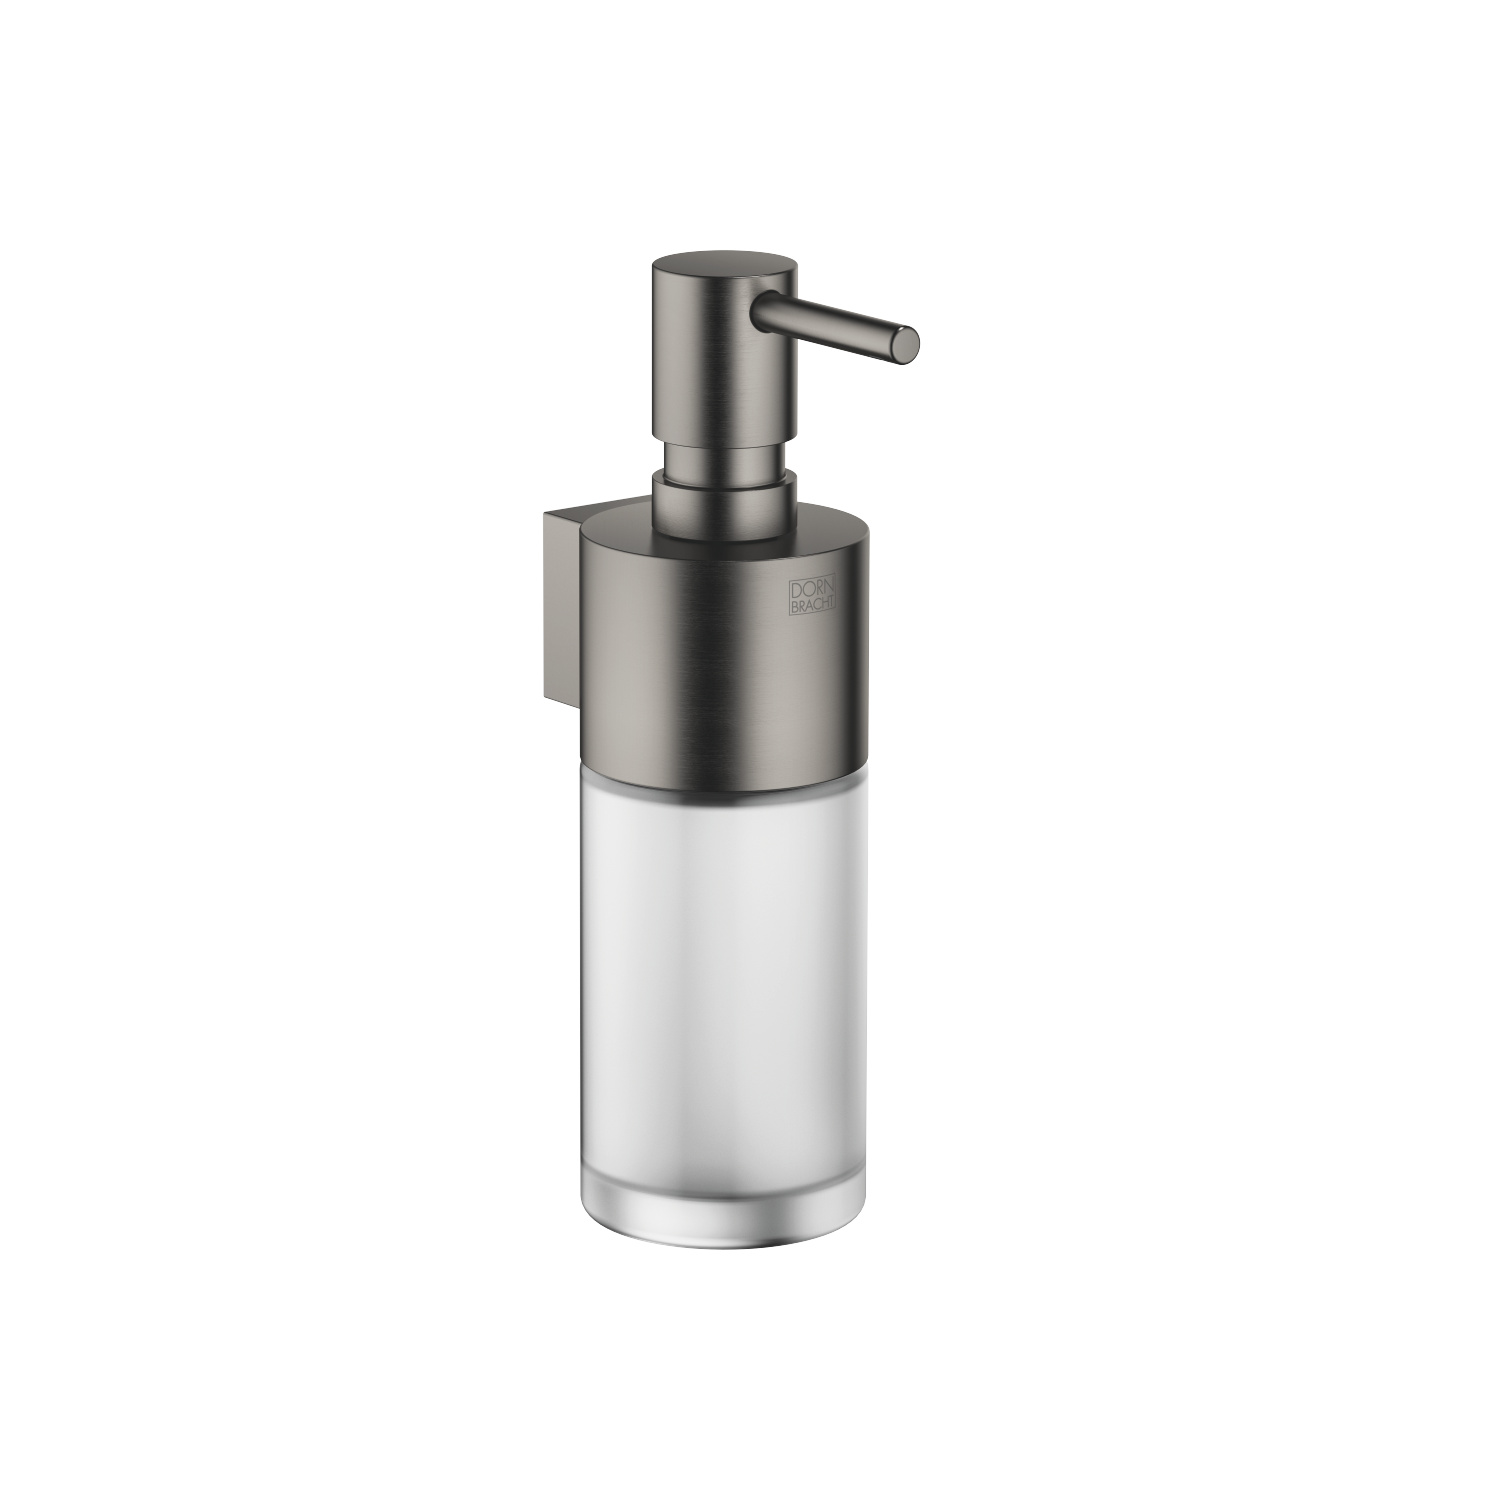 Dispenser wall model - Dark Platinum matt - 83 435 970-99